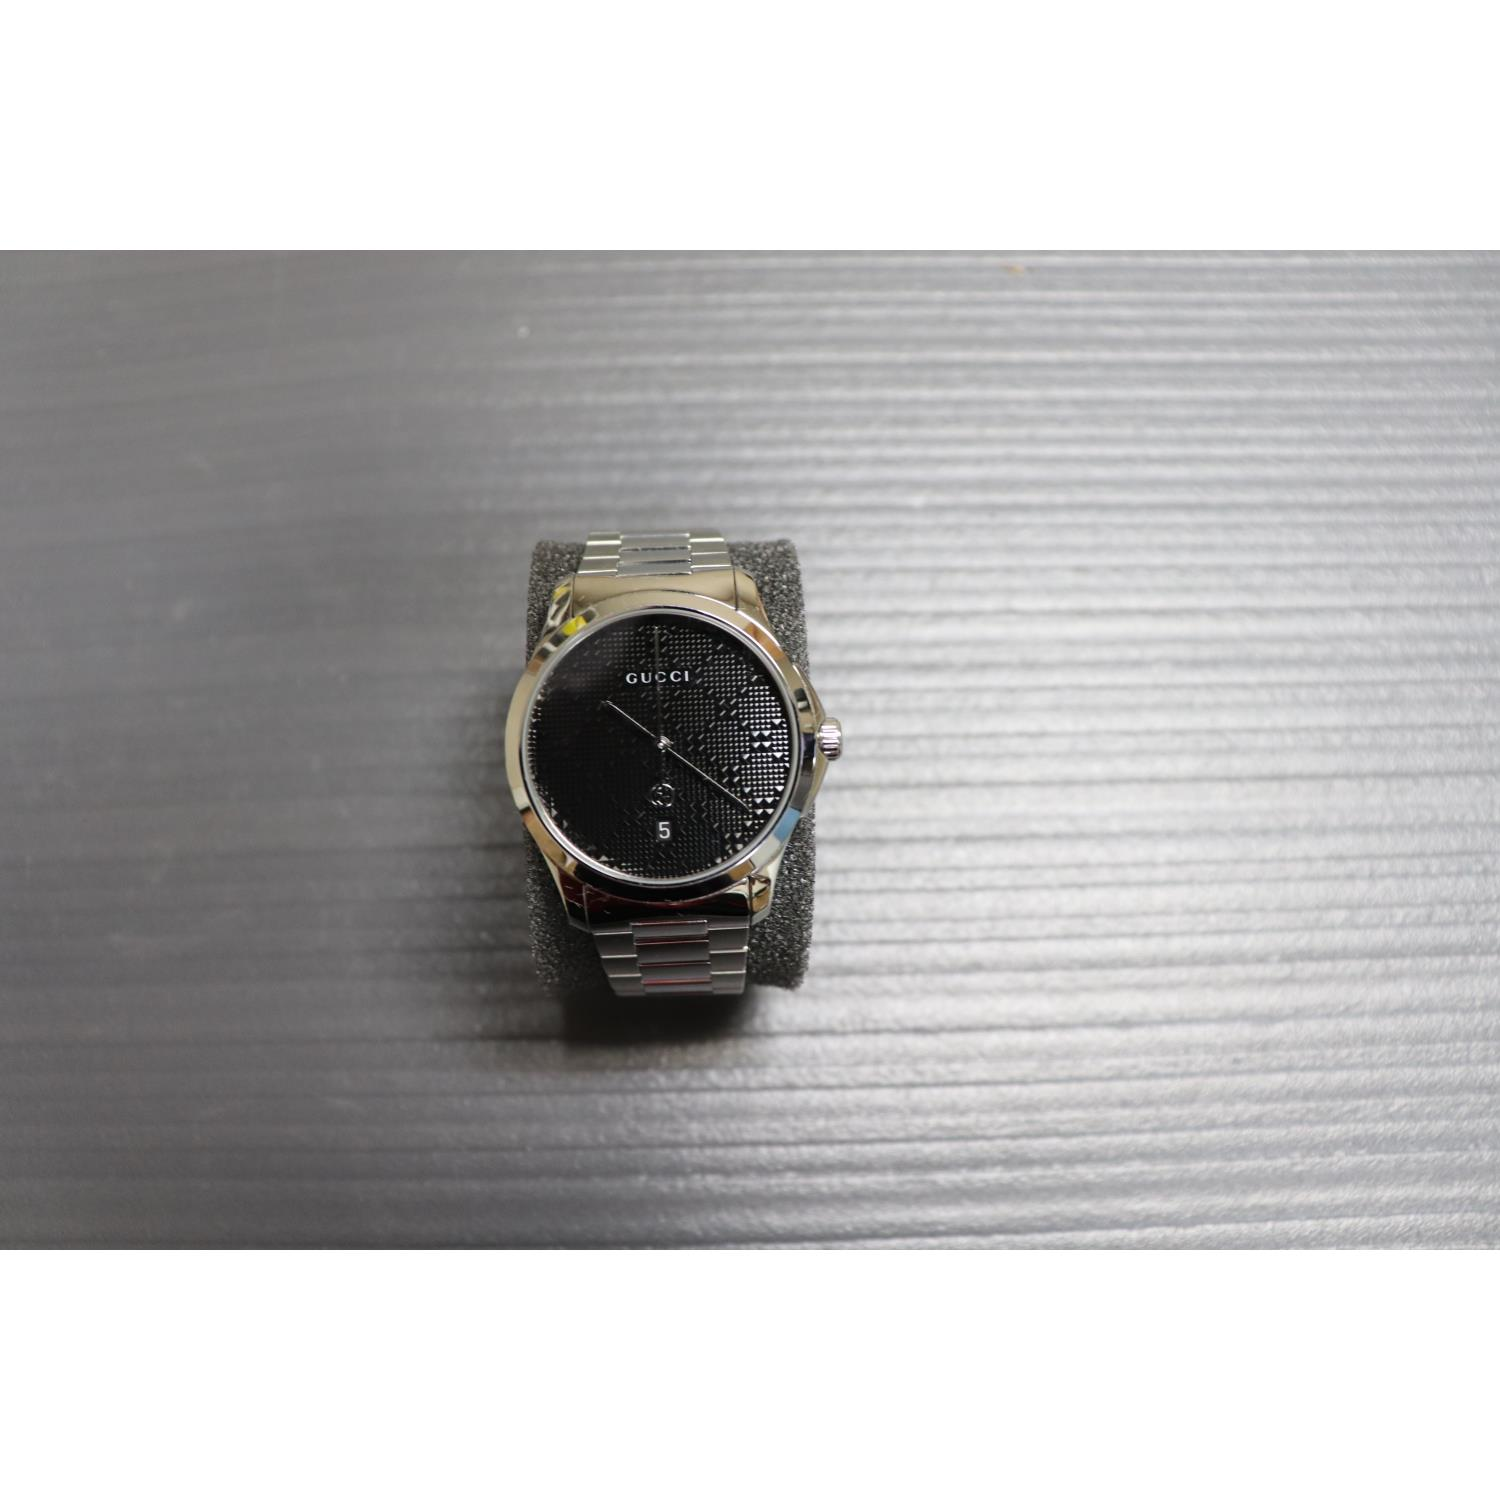 8f4cf50d875 Gucci YA126460 Mens Watch 38mm Stainless Steel Swiss Made